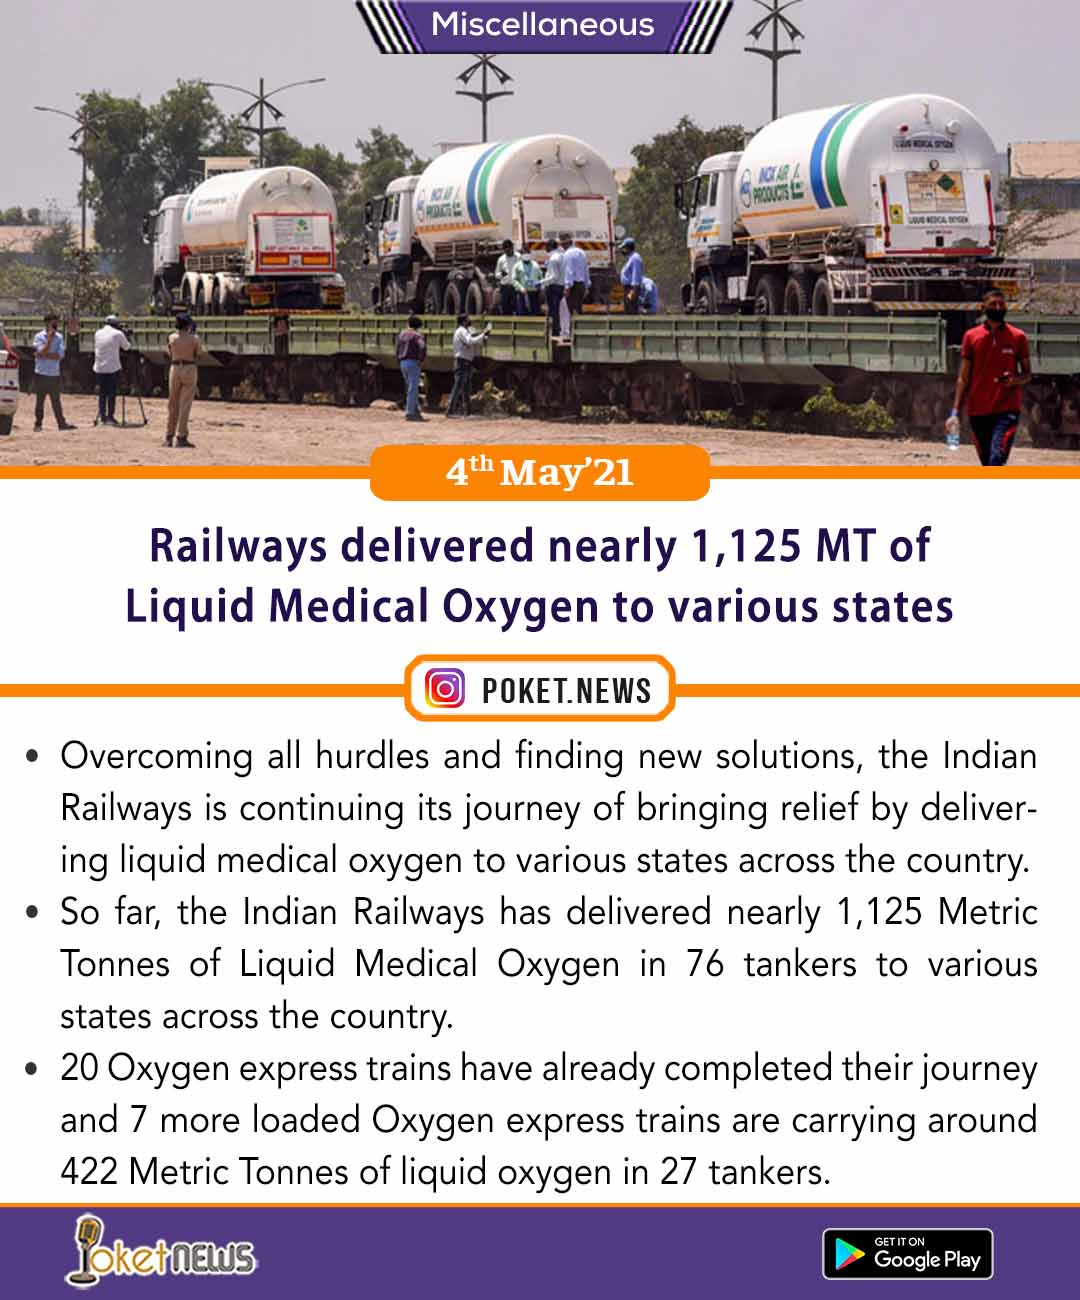 Railways delivered nearly 1,125 MT of Liquid Medical Oxygen to various states